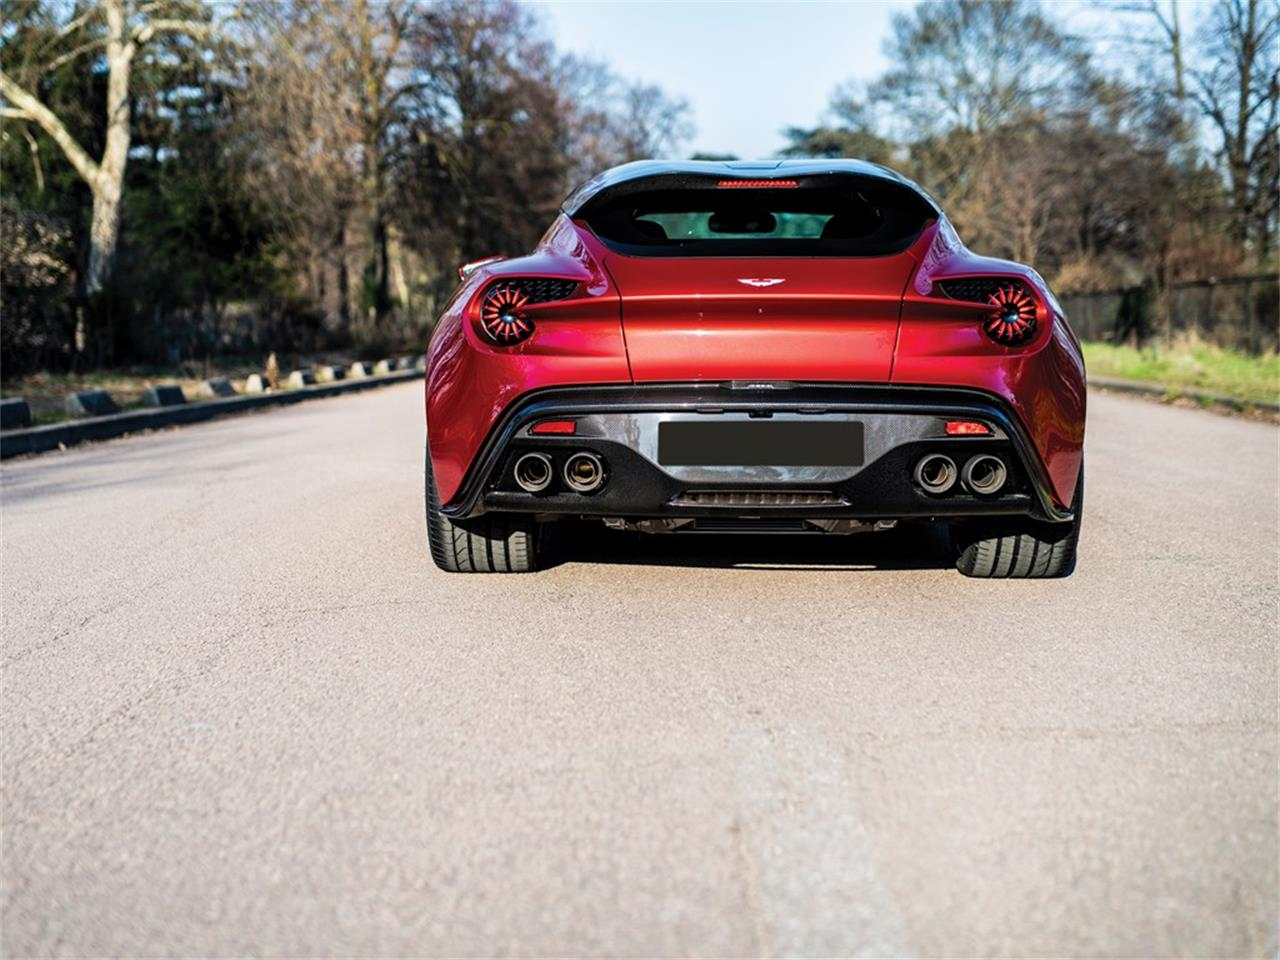 2019 Aston Martin Vanquish for sale in Cernobbio, Other – photo 9